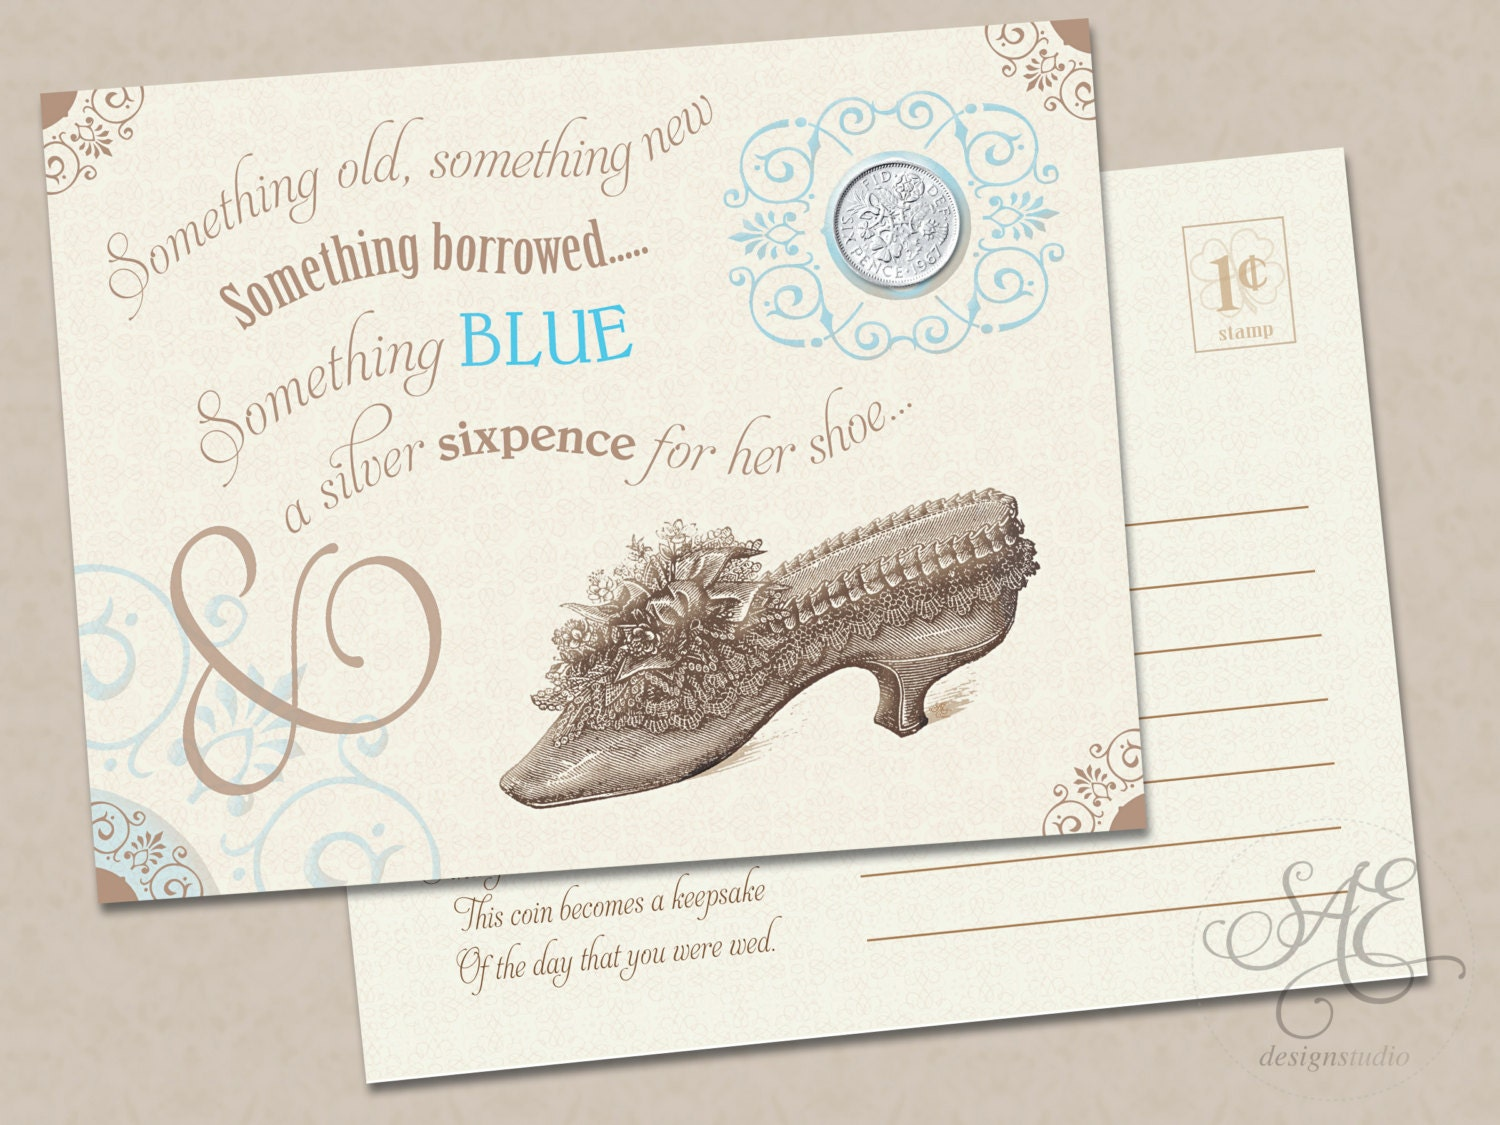 Wedding Gift Card Shower : Something old new borrowed blue a lucky silver sixpence tucked